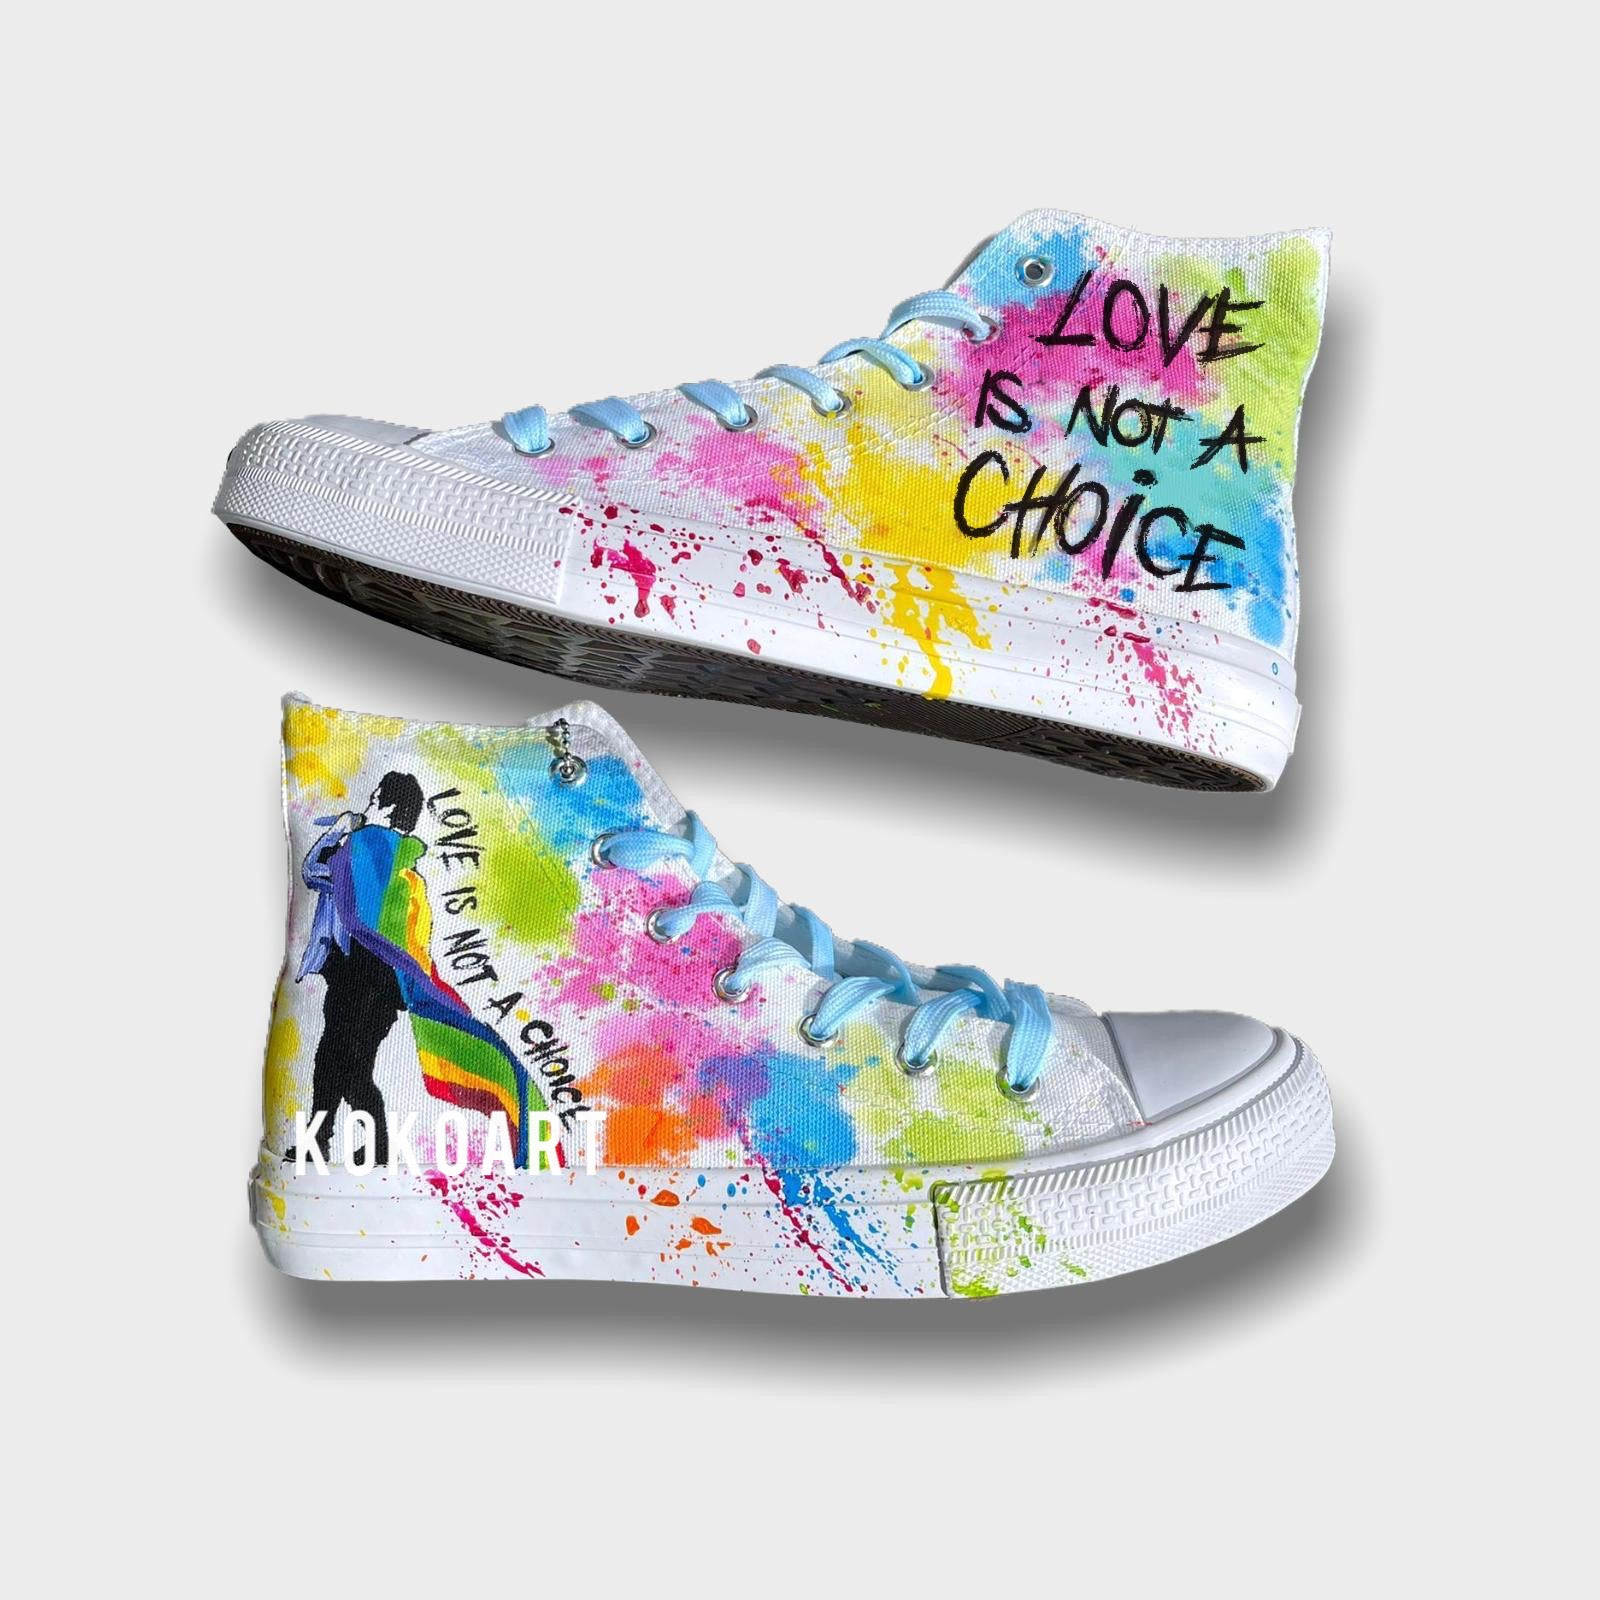 Love is not a Choice - Adults - Shoes